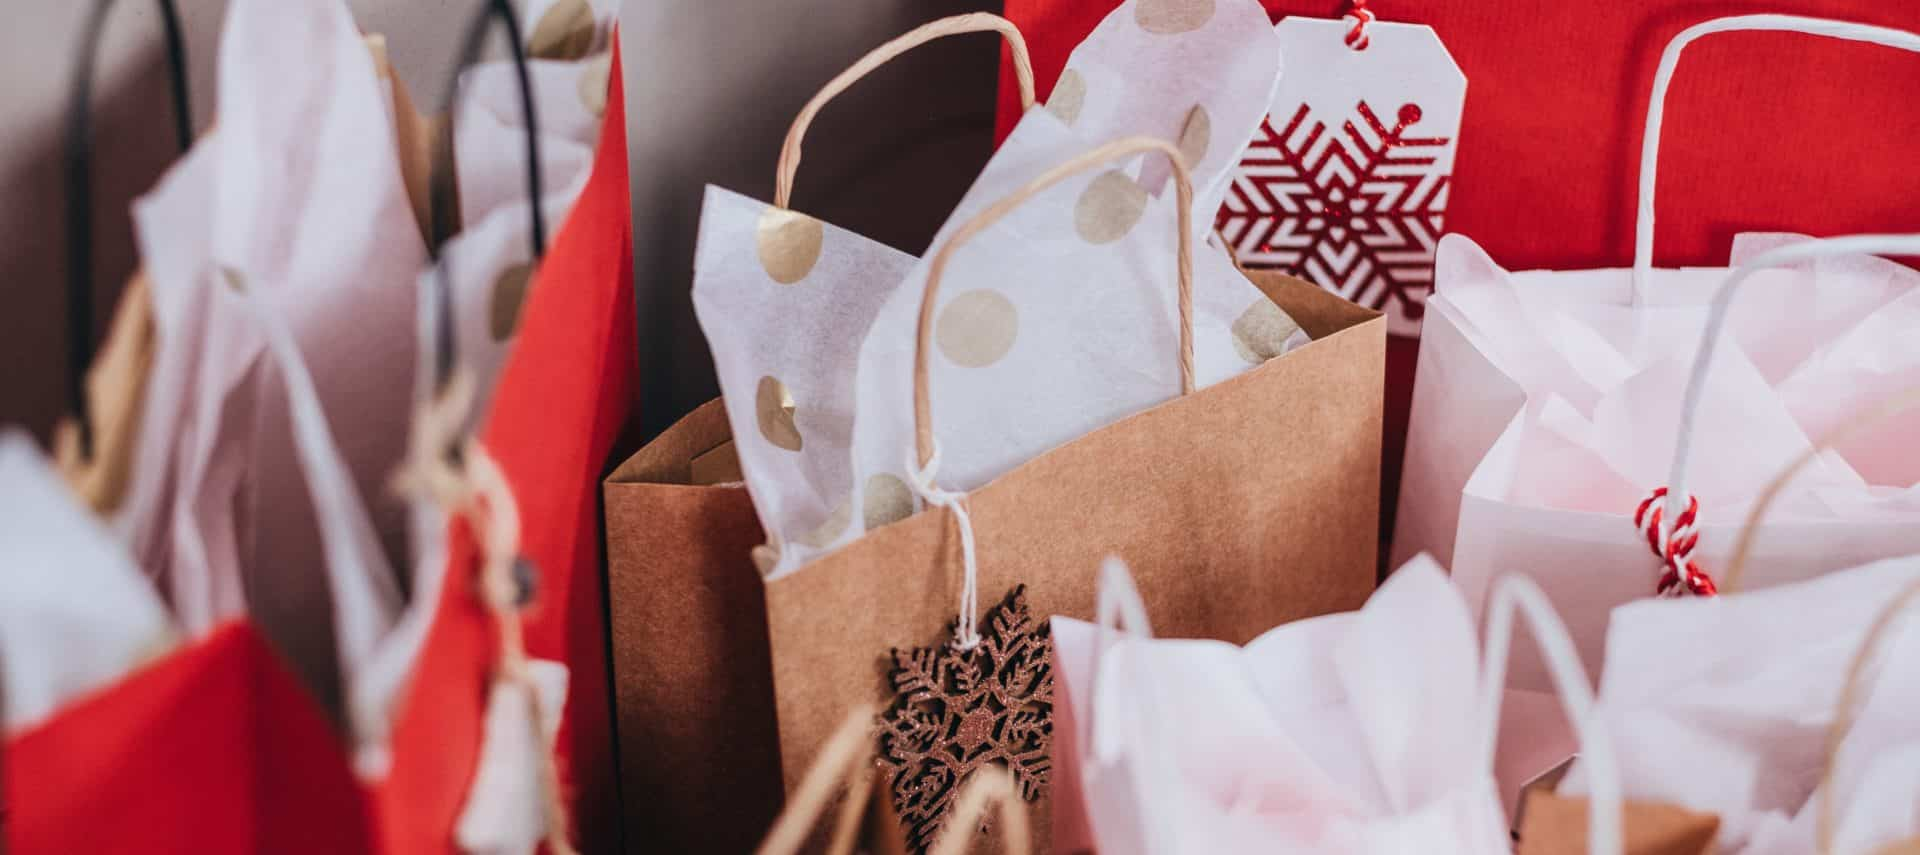 Several red and tan holiday shopping bags